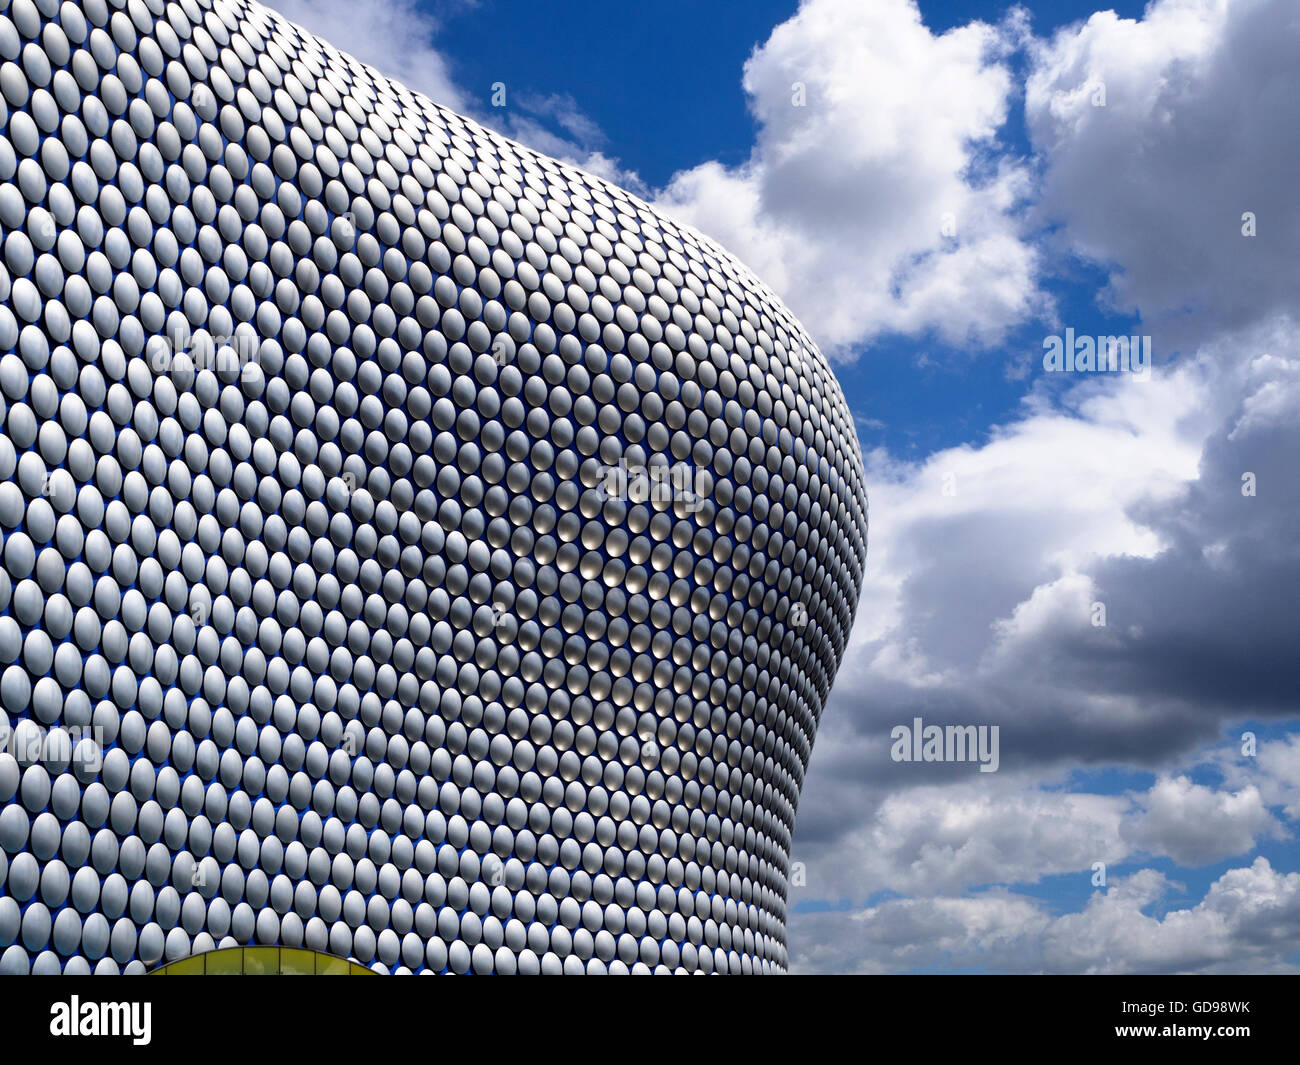 Selfridges Building at the Bullring in Birmingham City Centre West Midlands England - Stock Image